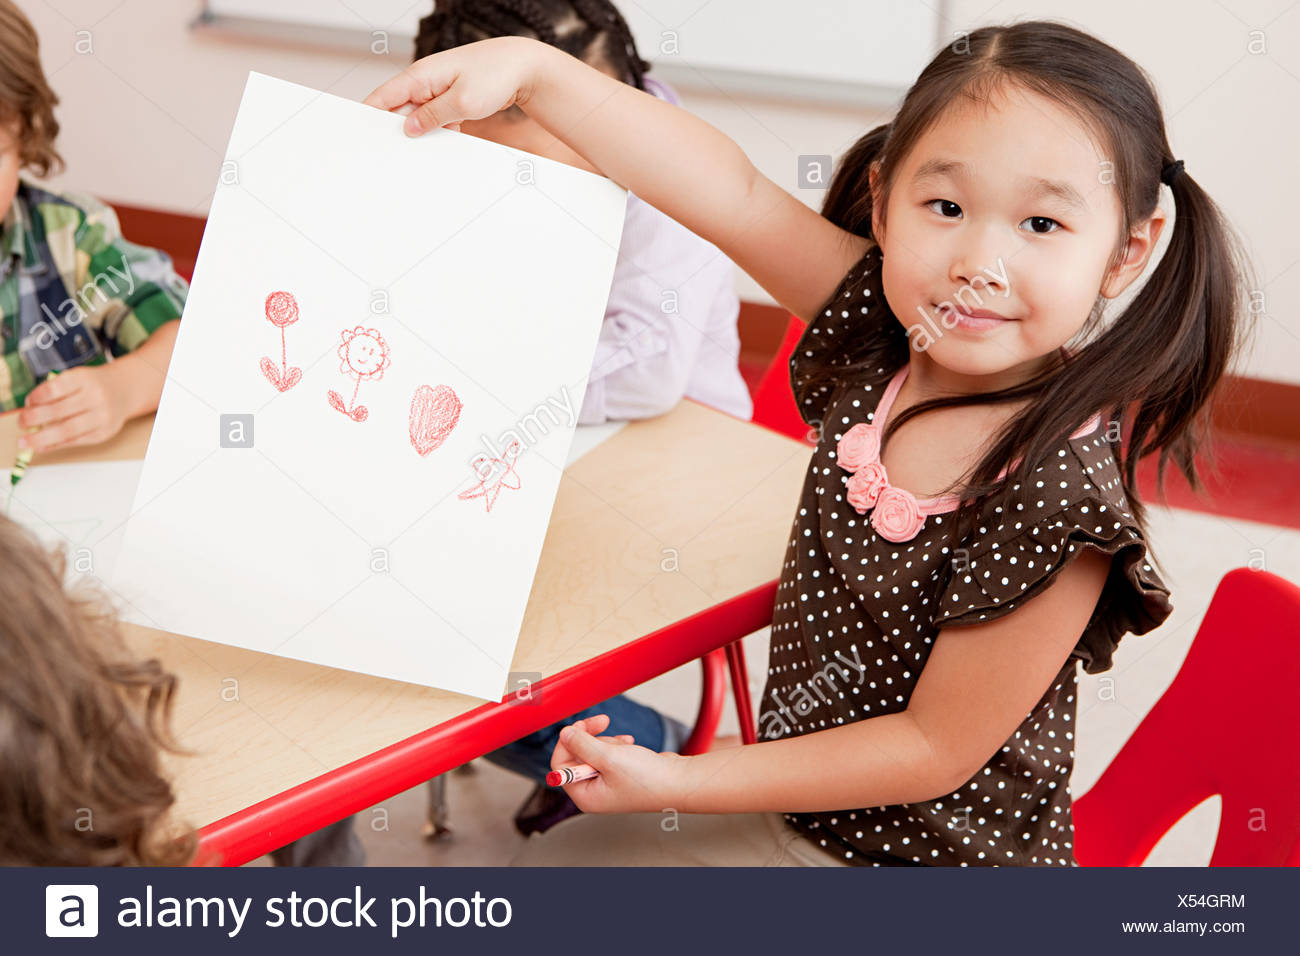 Girl with a crayon drawing - Stock Image